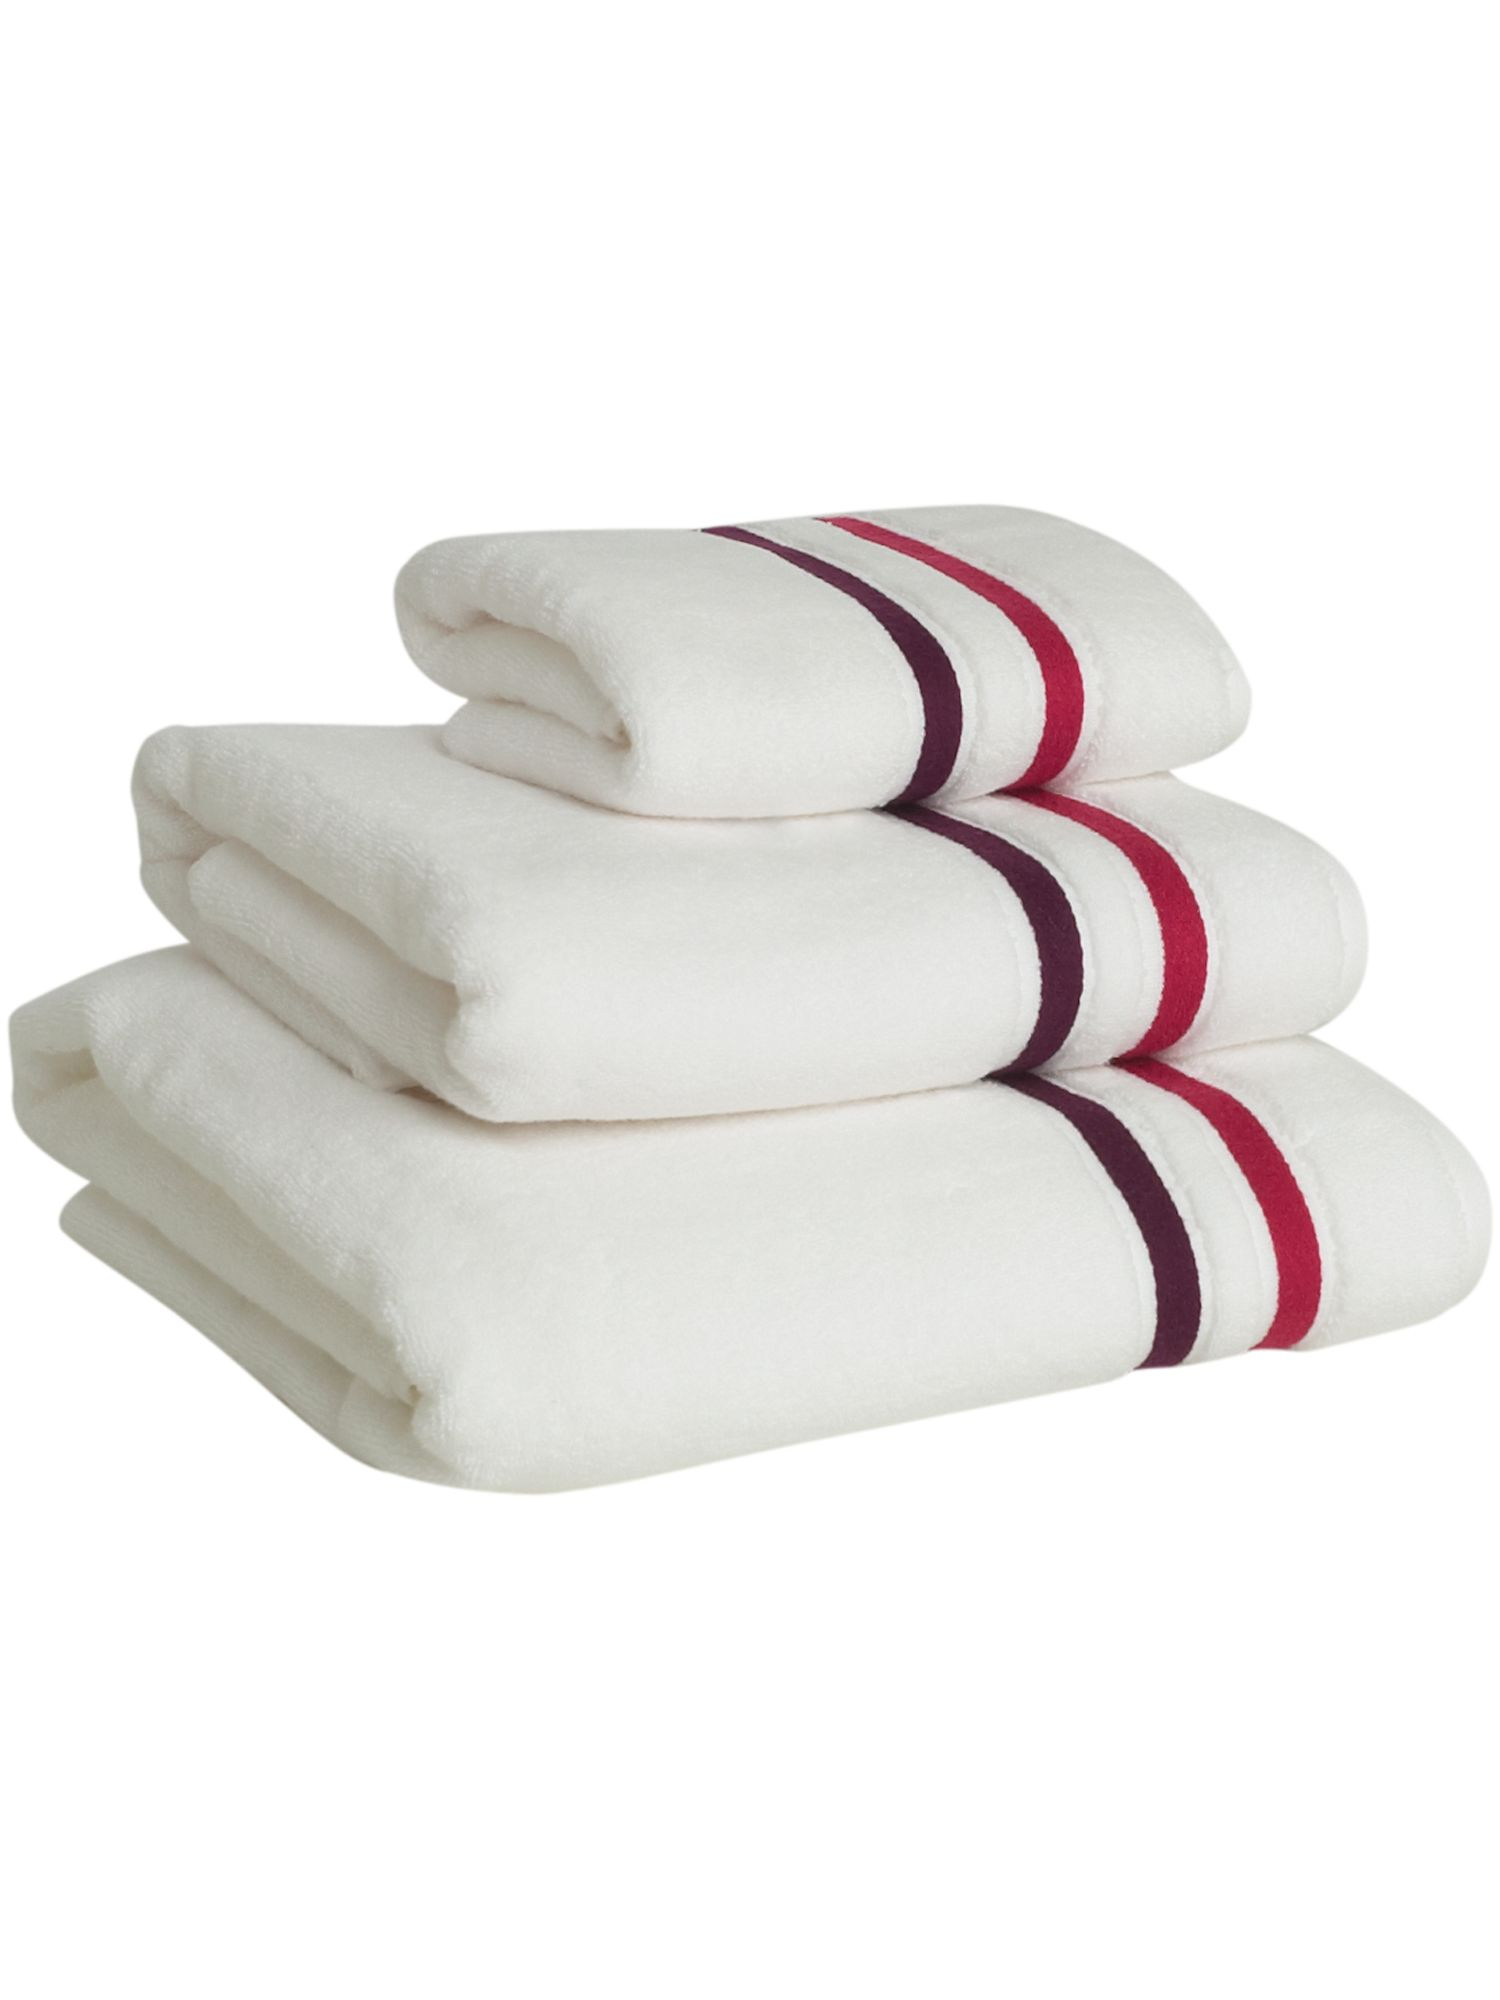 Weft insert towels in berry